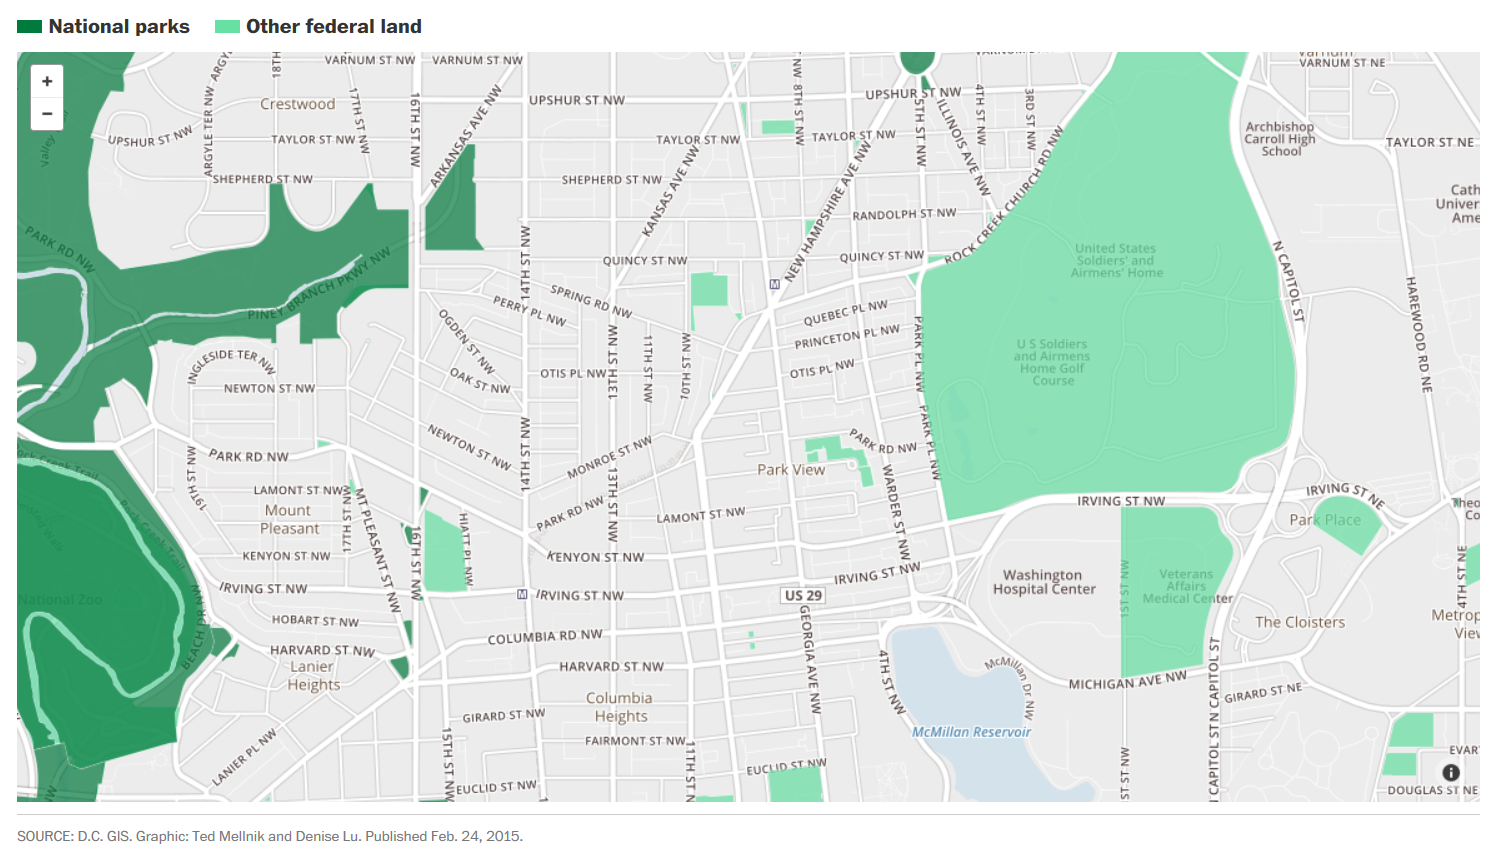 Map Showing Federal Land in D.C. | Park View, D.C. on